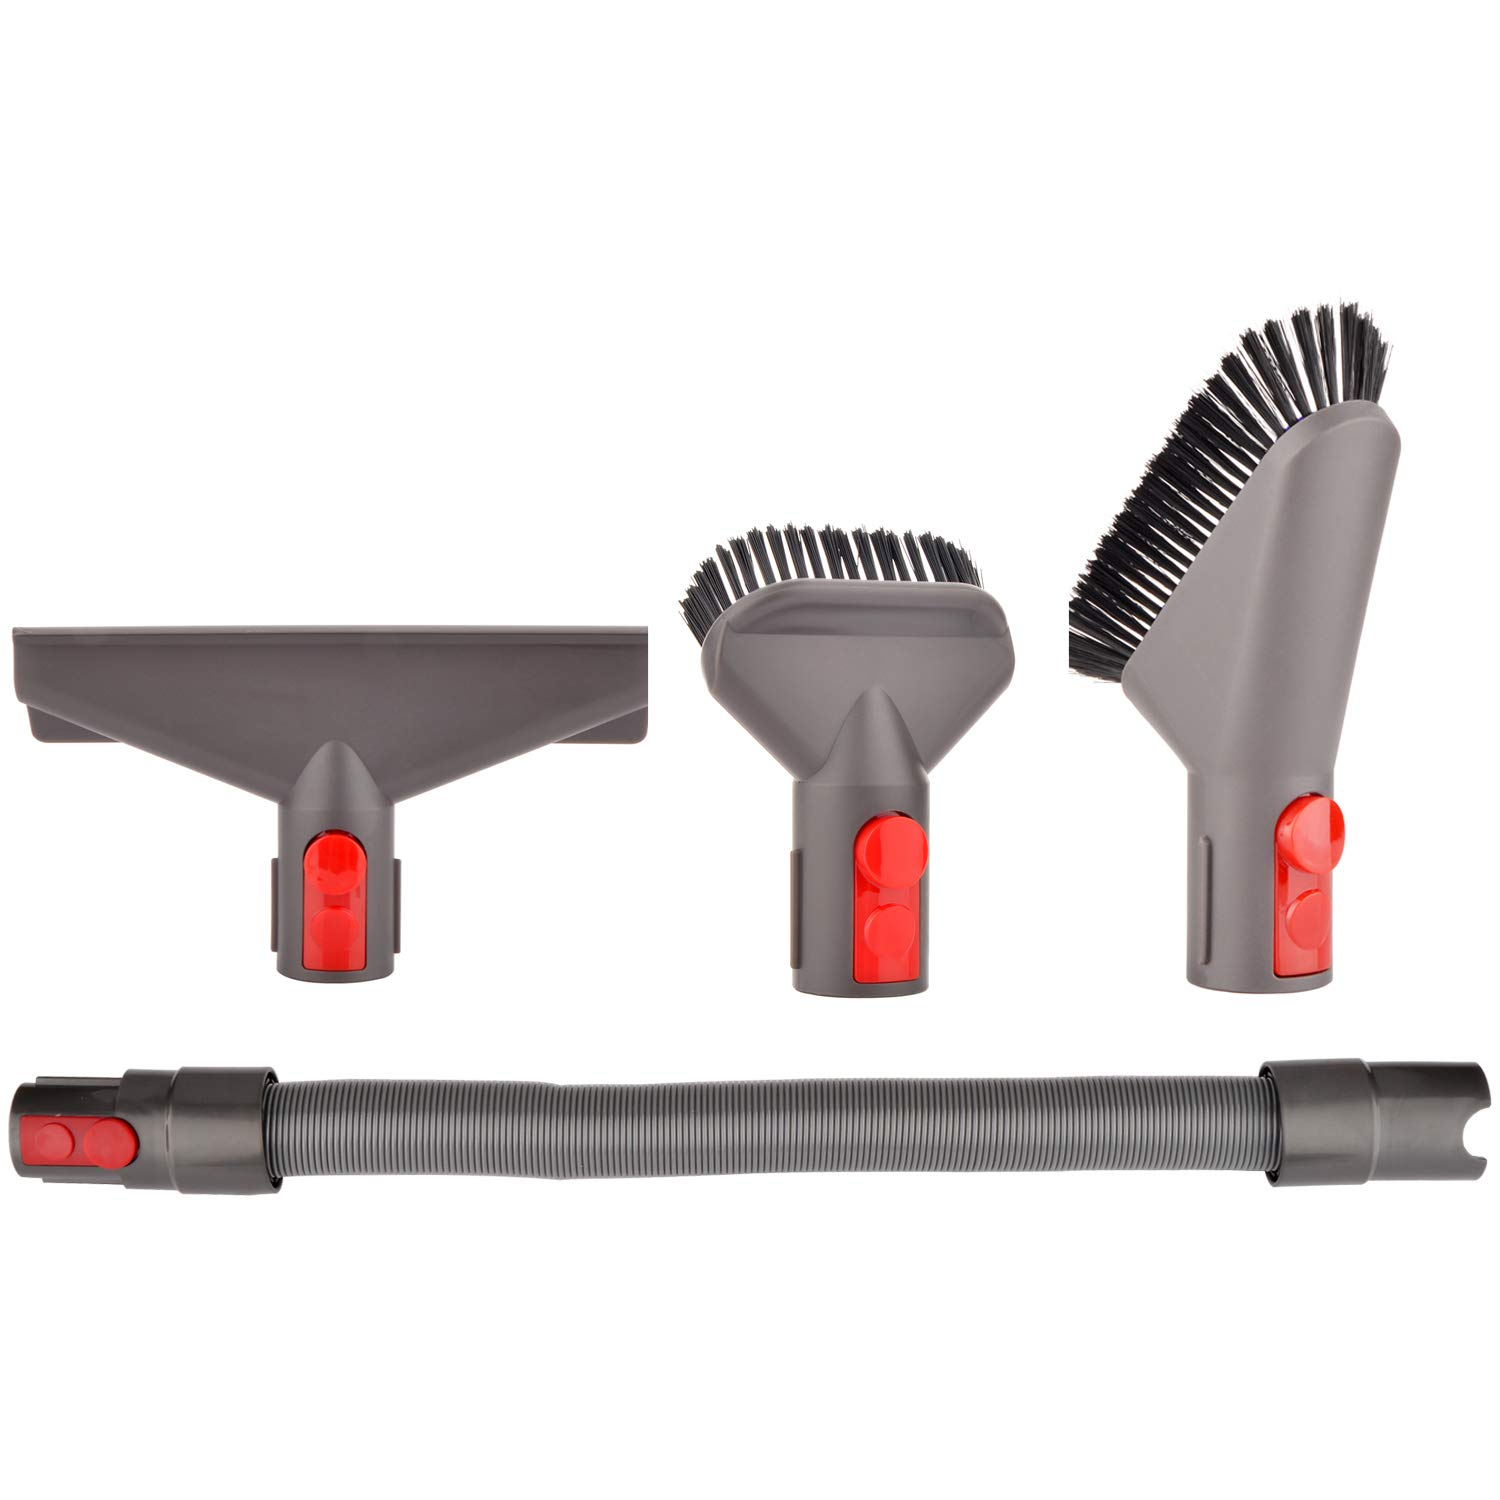 Brush Accessories Compatible with Dyson V8 Absolute Animal V7 Absolute Animal Trigger Motorhead V10 Absolute Animal Motorhead Attachments (f-mattress tool+hose+stubborn dirt brush+soft dusting brush)